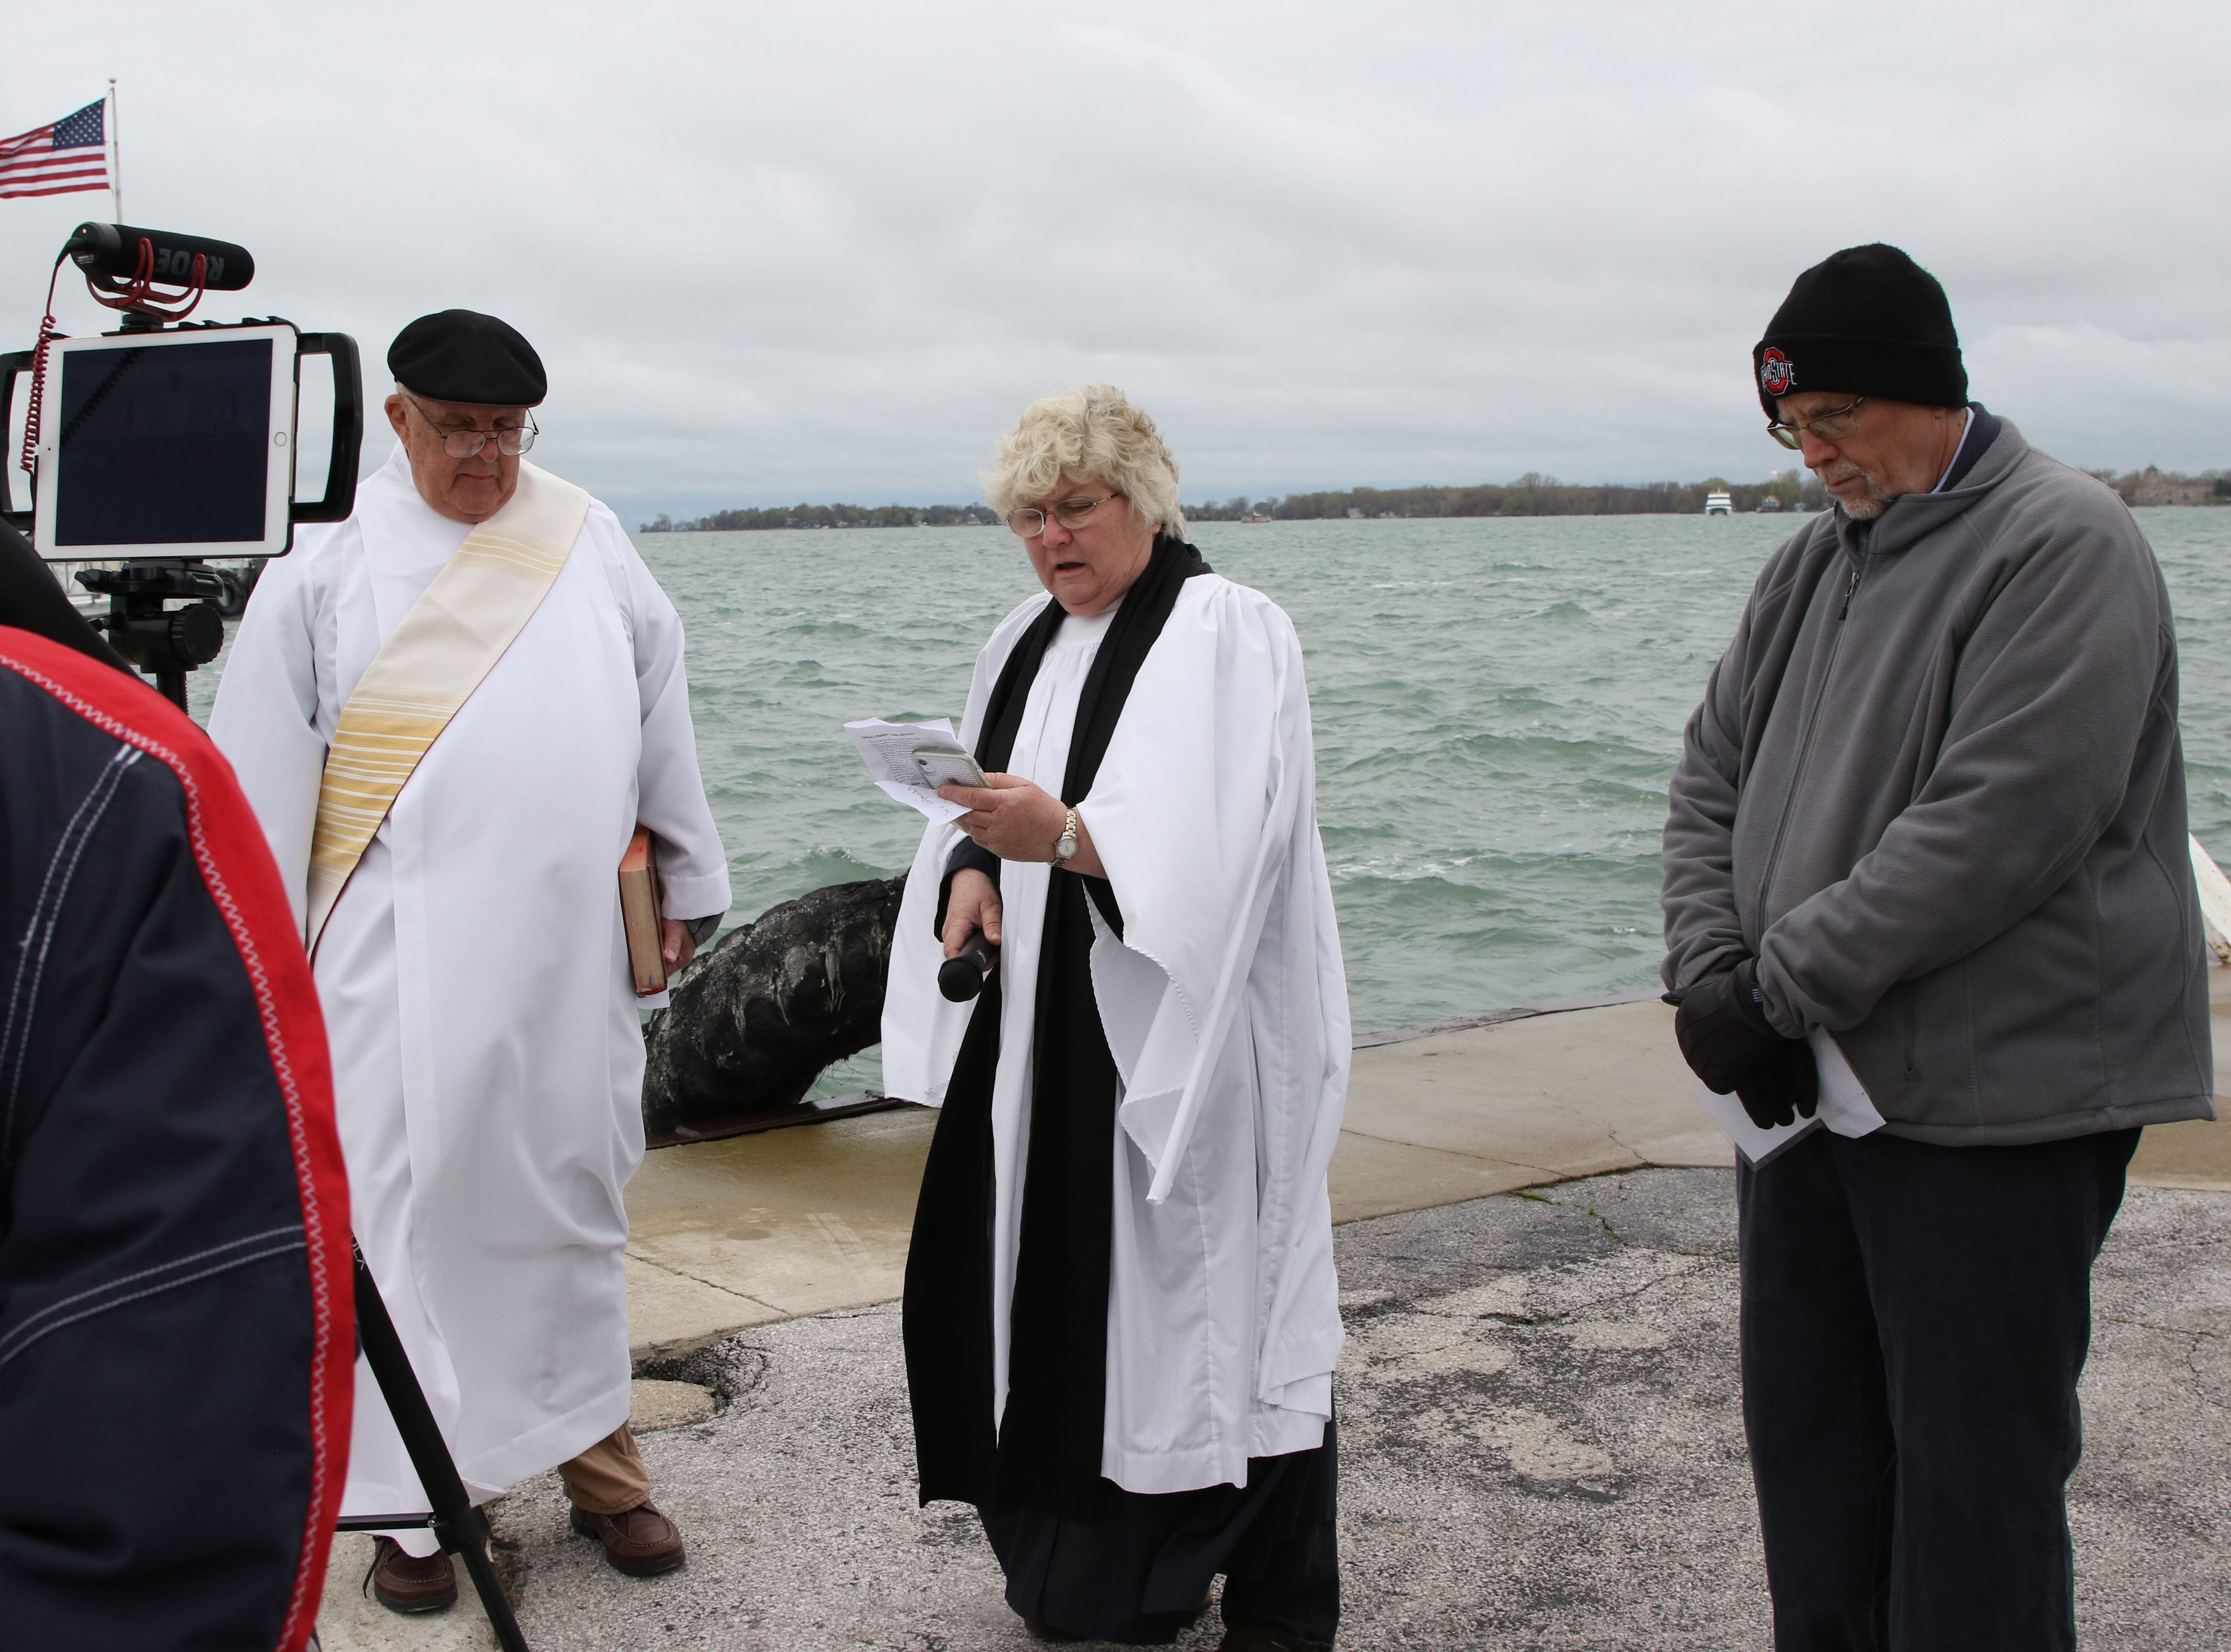 Members of the clergy from South Bass Island churches say prayers to bless the fleet Tuesday at Fox's Dock in Put-in-Bay Harbor. From left are Deacon Mike Leahy of Mother of Sorrows Catholic Church, the Rev. Mary Staley of St. Paul Episcopal Church, and the Rev. Jim Lehman of St. John Lutheran Church.